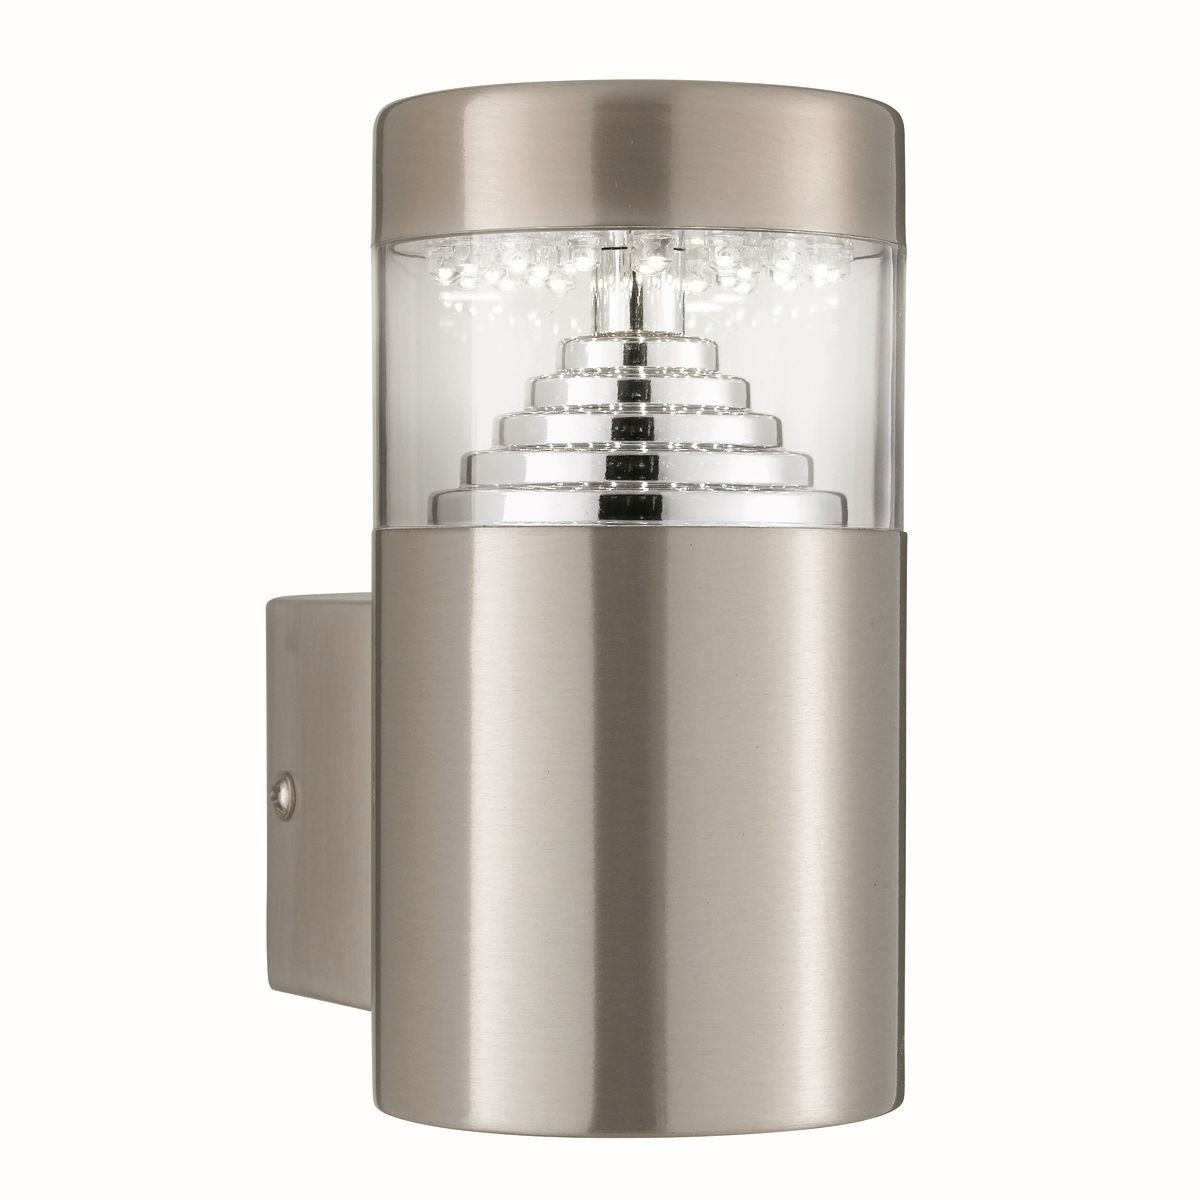 Led outdoor light stainless steel wall